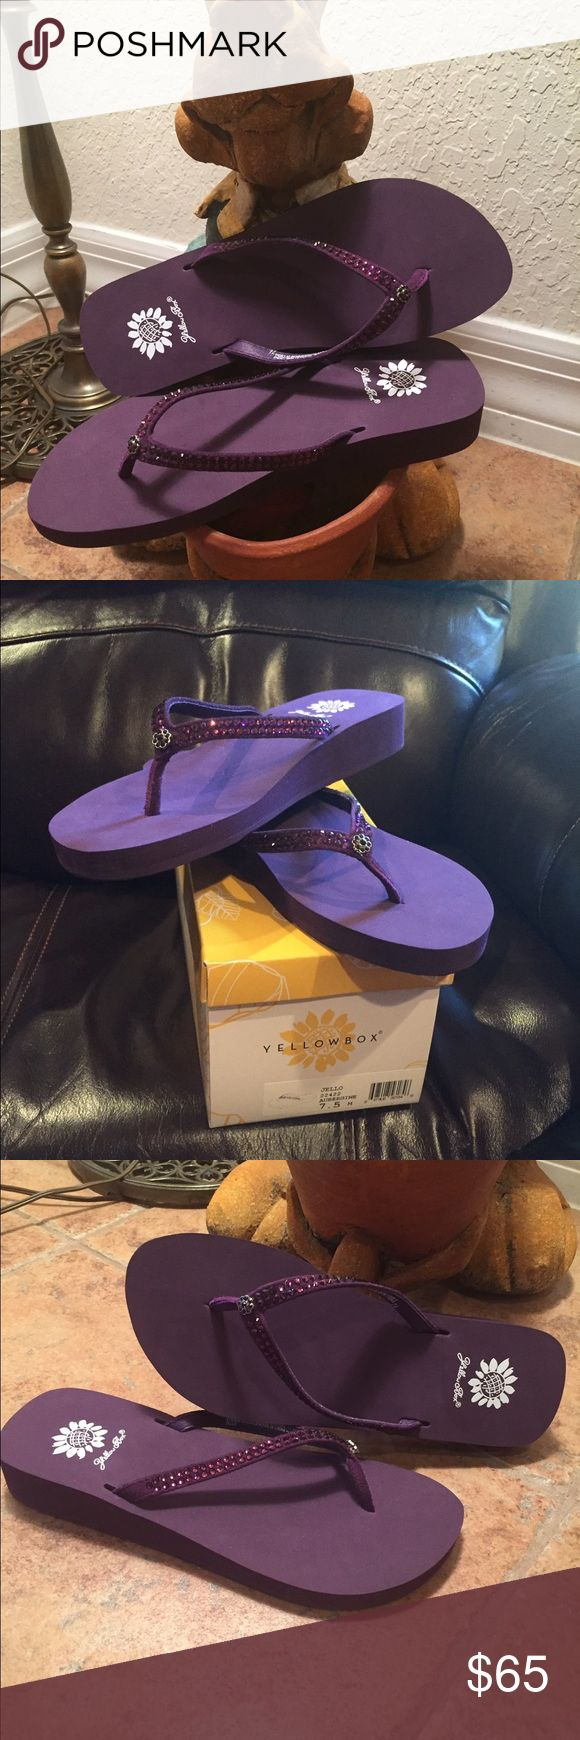 Yellow Box Flip Flops NWT Gorgeous aubergine color. Style is jello. Brand new. If you know yellowbox you know these are the most comfortable flip flops ever! Yellow Box Shoes Sandals